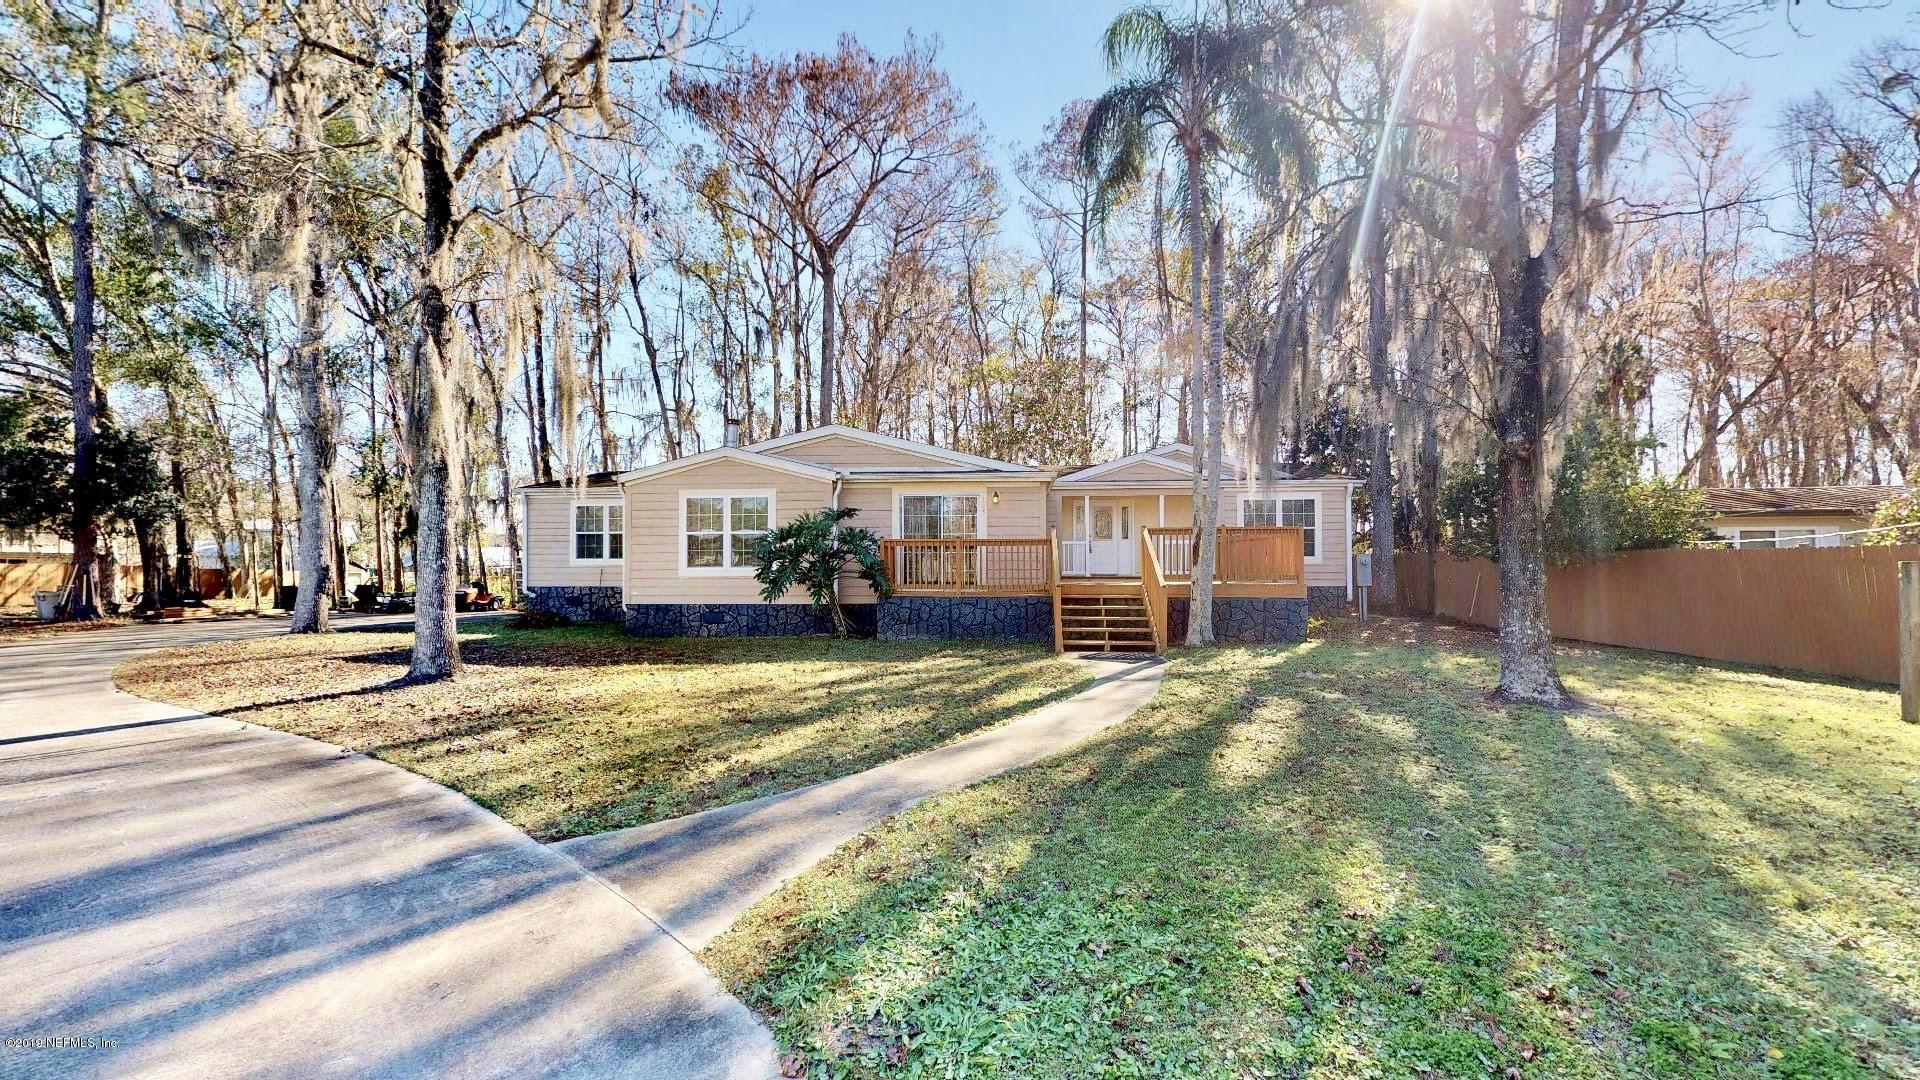 125 EDGEWATER, SATSUMA, FLORIDA 32189, 3 Bedrooms Bedrooms, ,2 BathroomsBathrooms,Residential - mobile home,For sale,EDGEWATER,975534